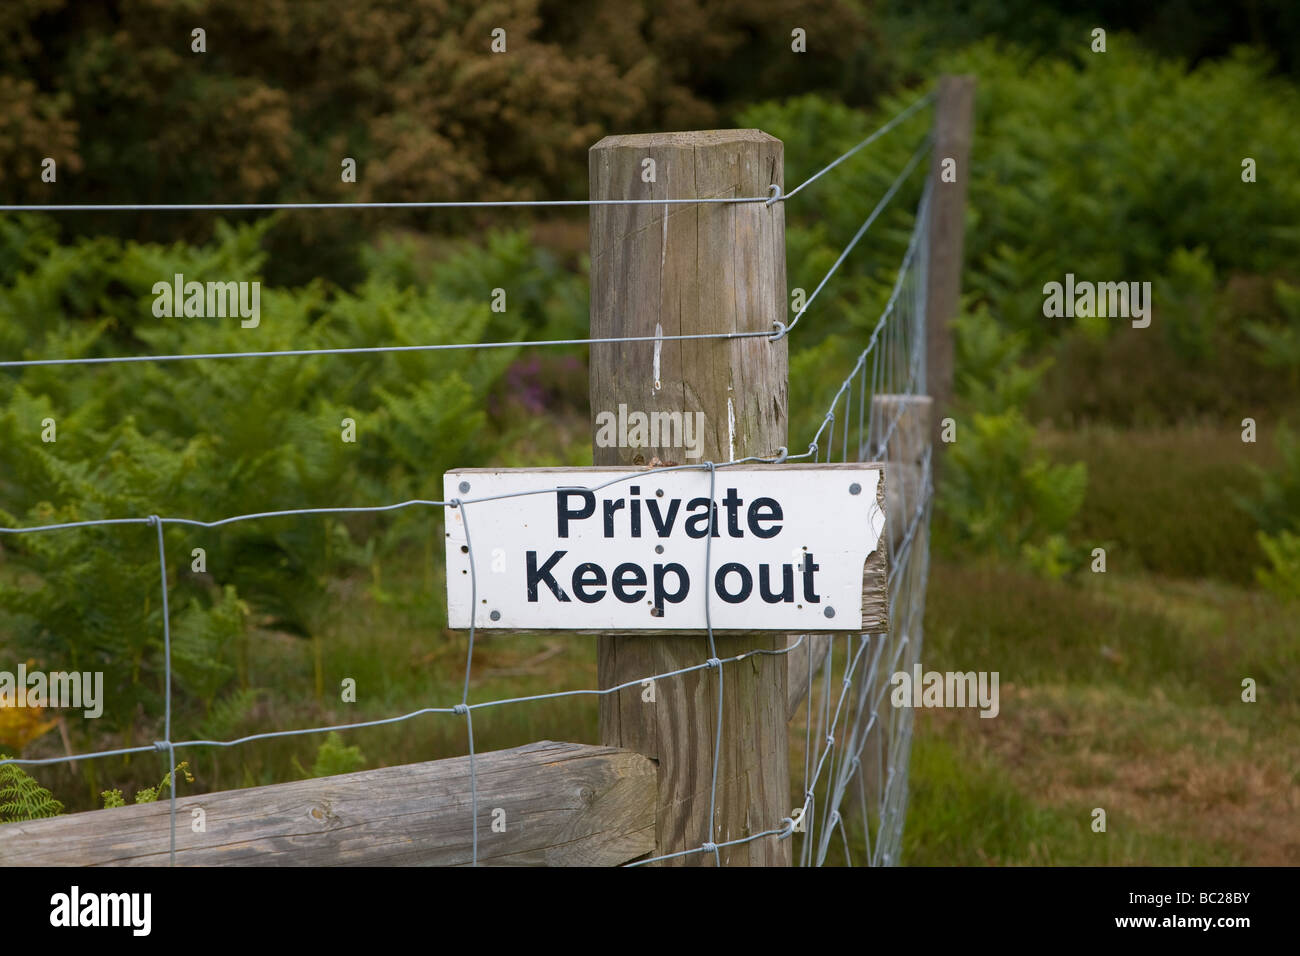 Private Keep Out sign on fence post - Stock Image